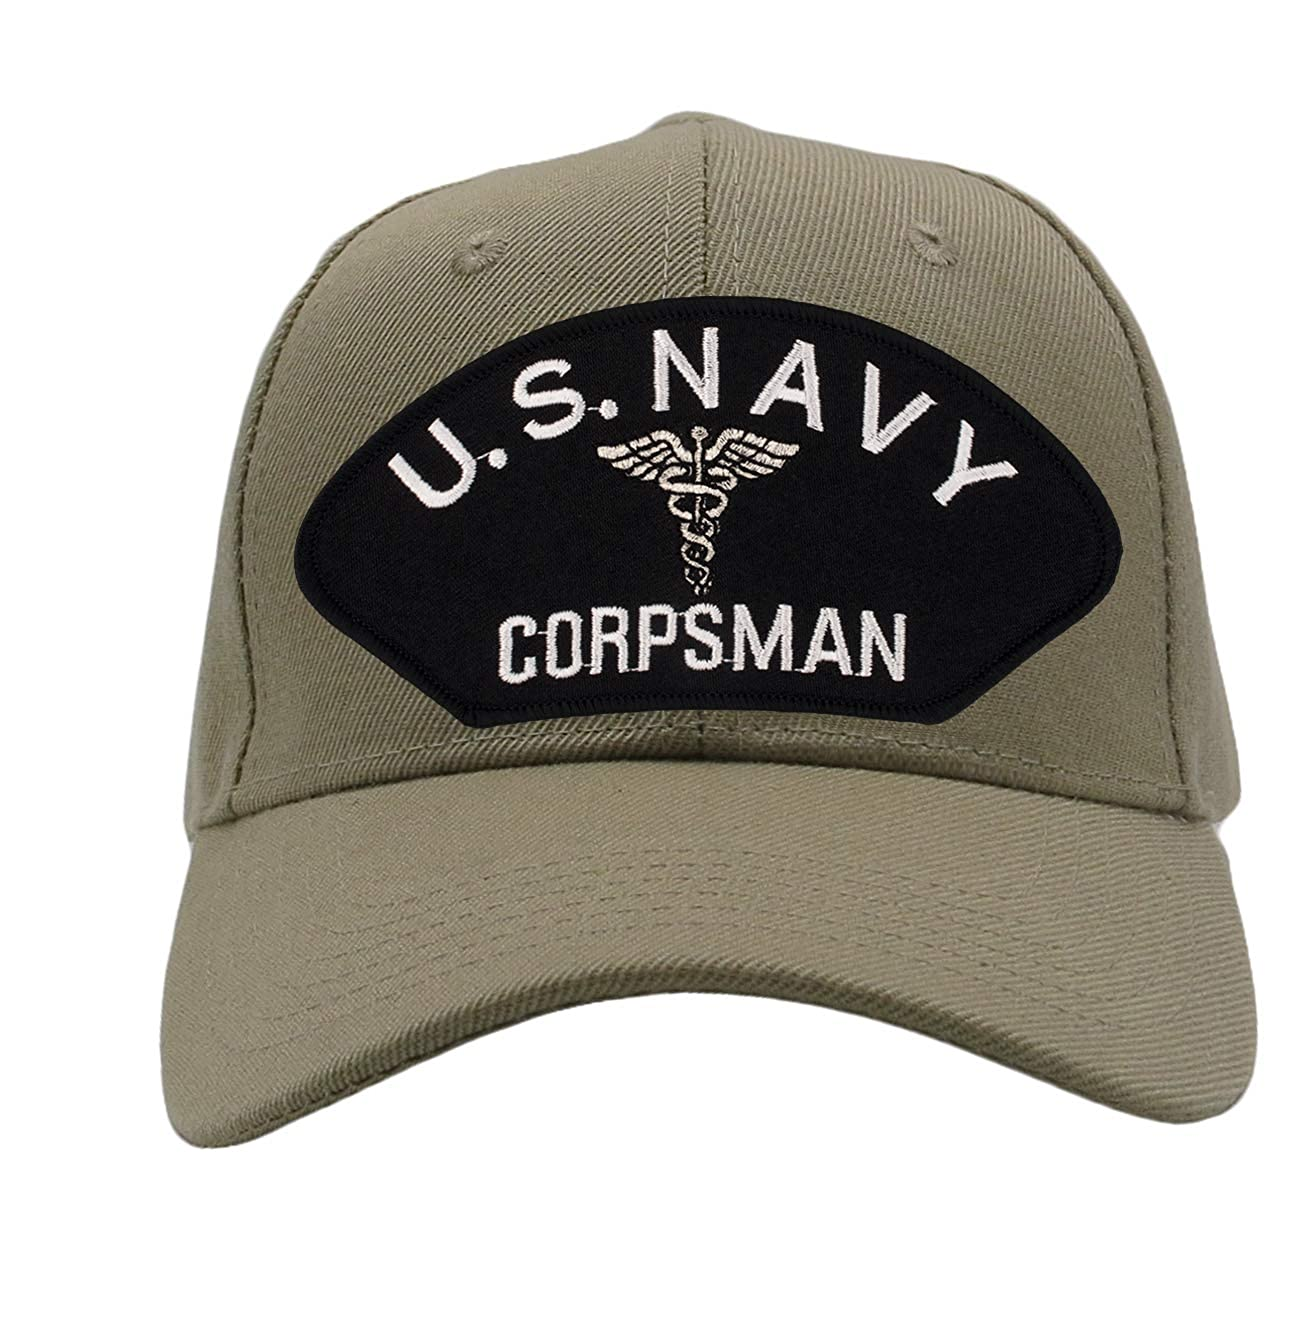 Patchtown US Navy Corpsman Hat//Ballcap Adjustable One Size Fits Most